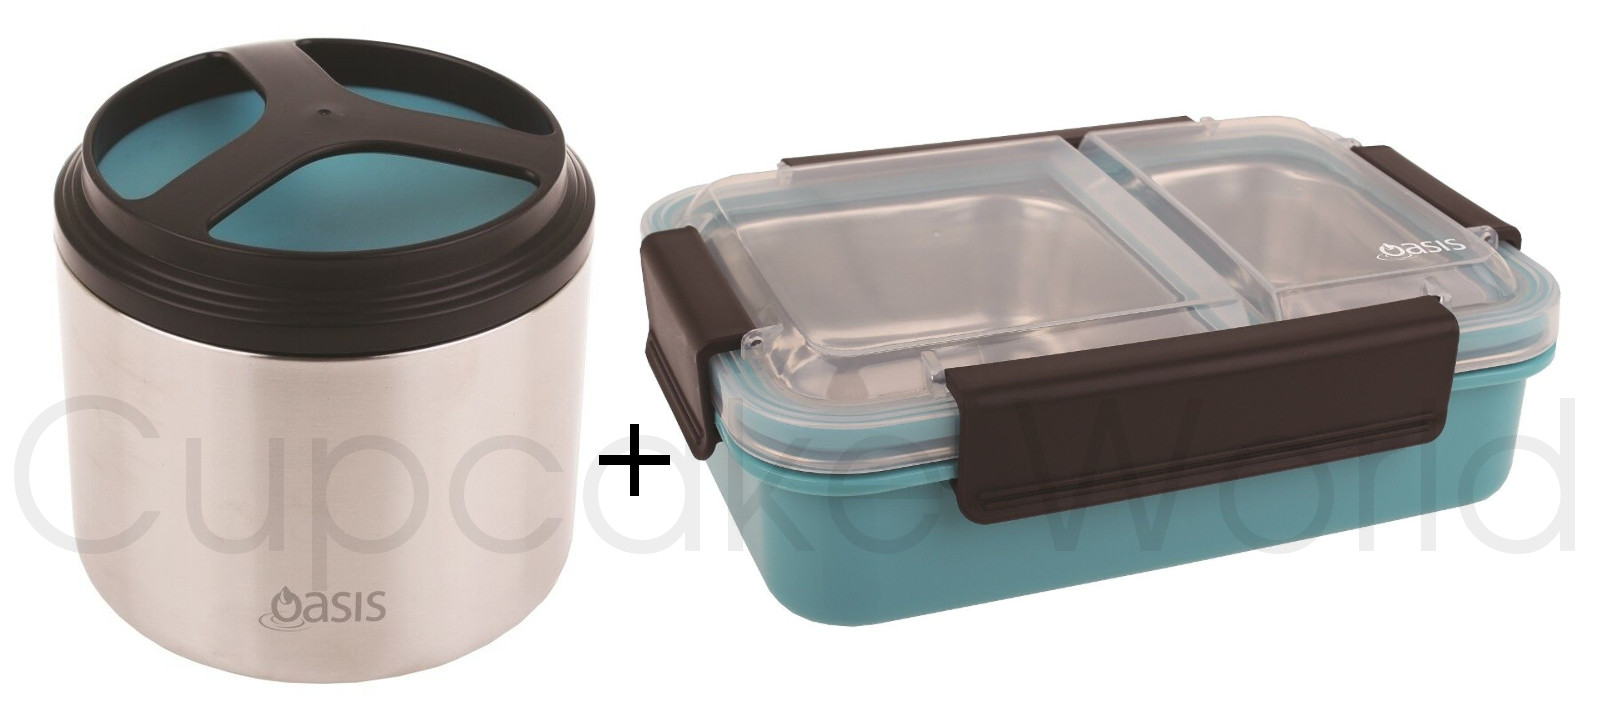 BLUE OASIS STAINLESS STEEL 1L VACUUM FOOD CONTAINER & LUNCH BOX!